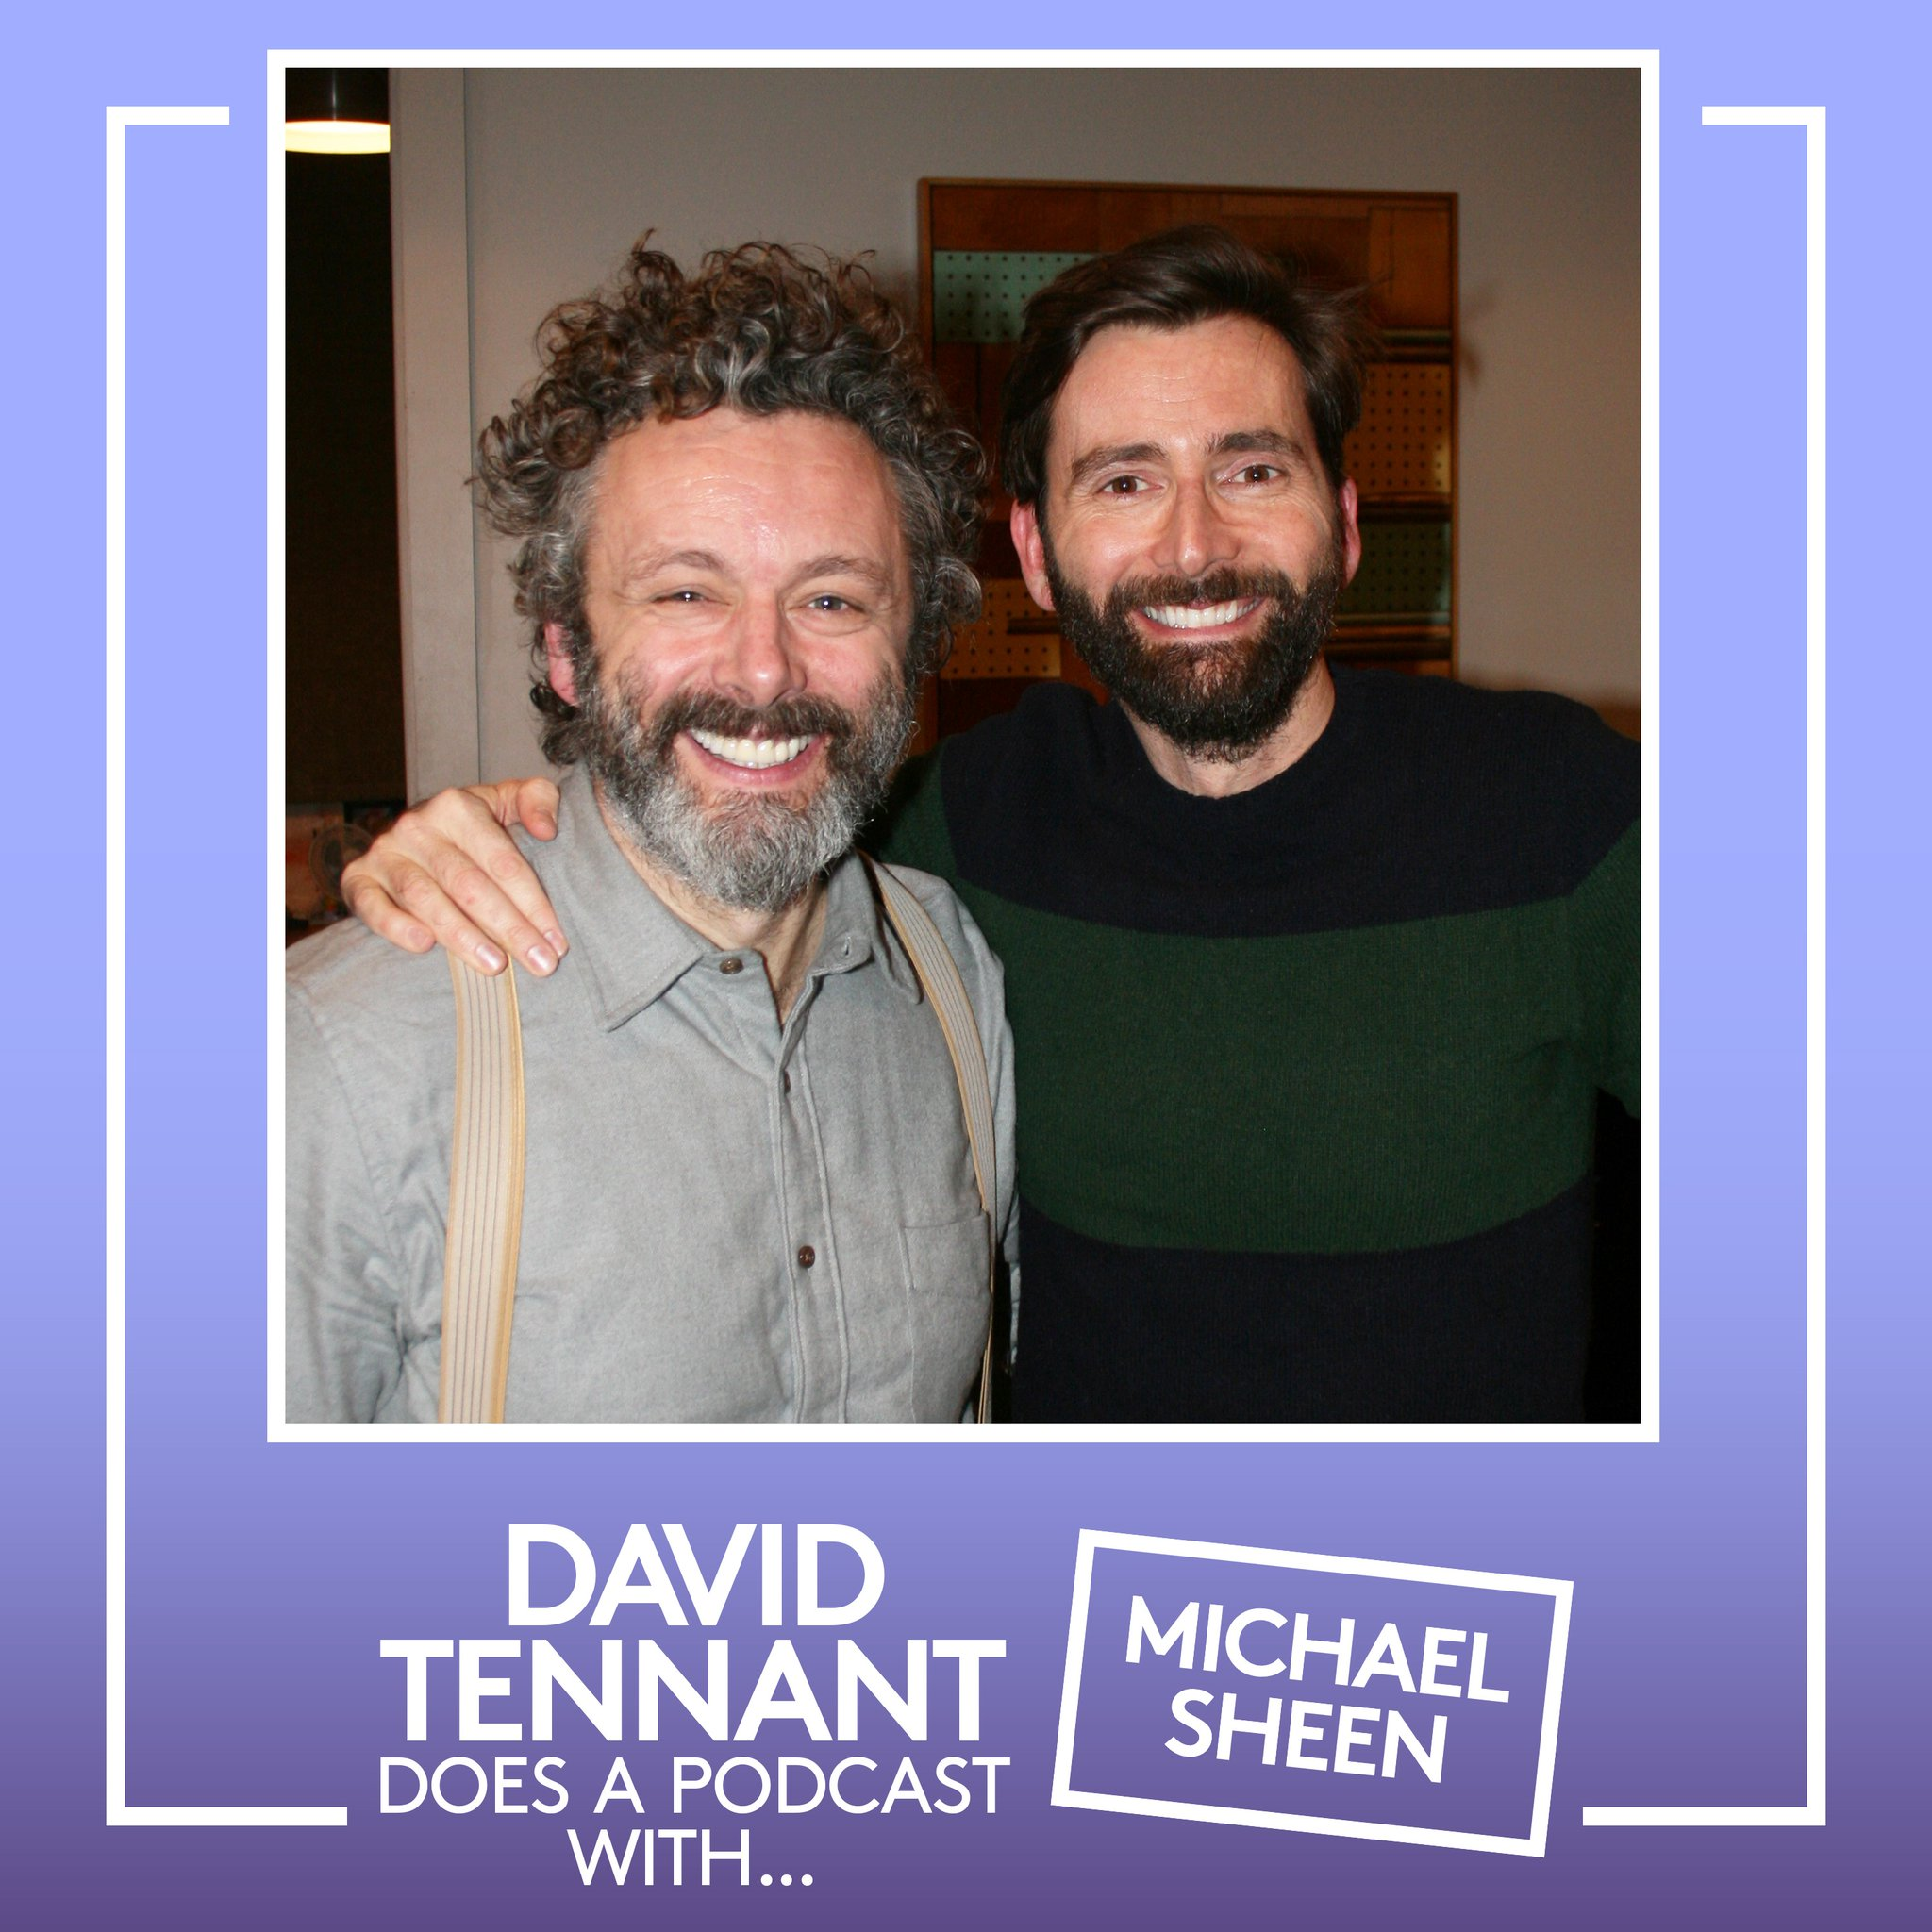 Review David Tennant Does A Podcast With Michael Sheen A Blistering Funny Chat Blogtor Who